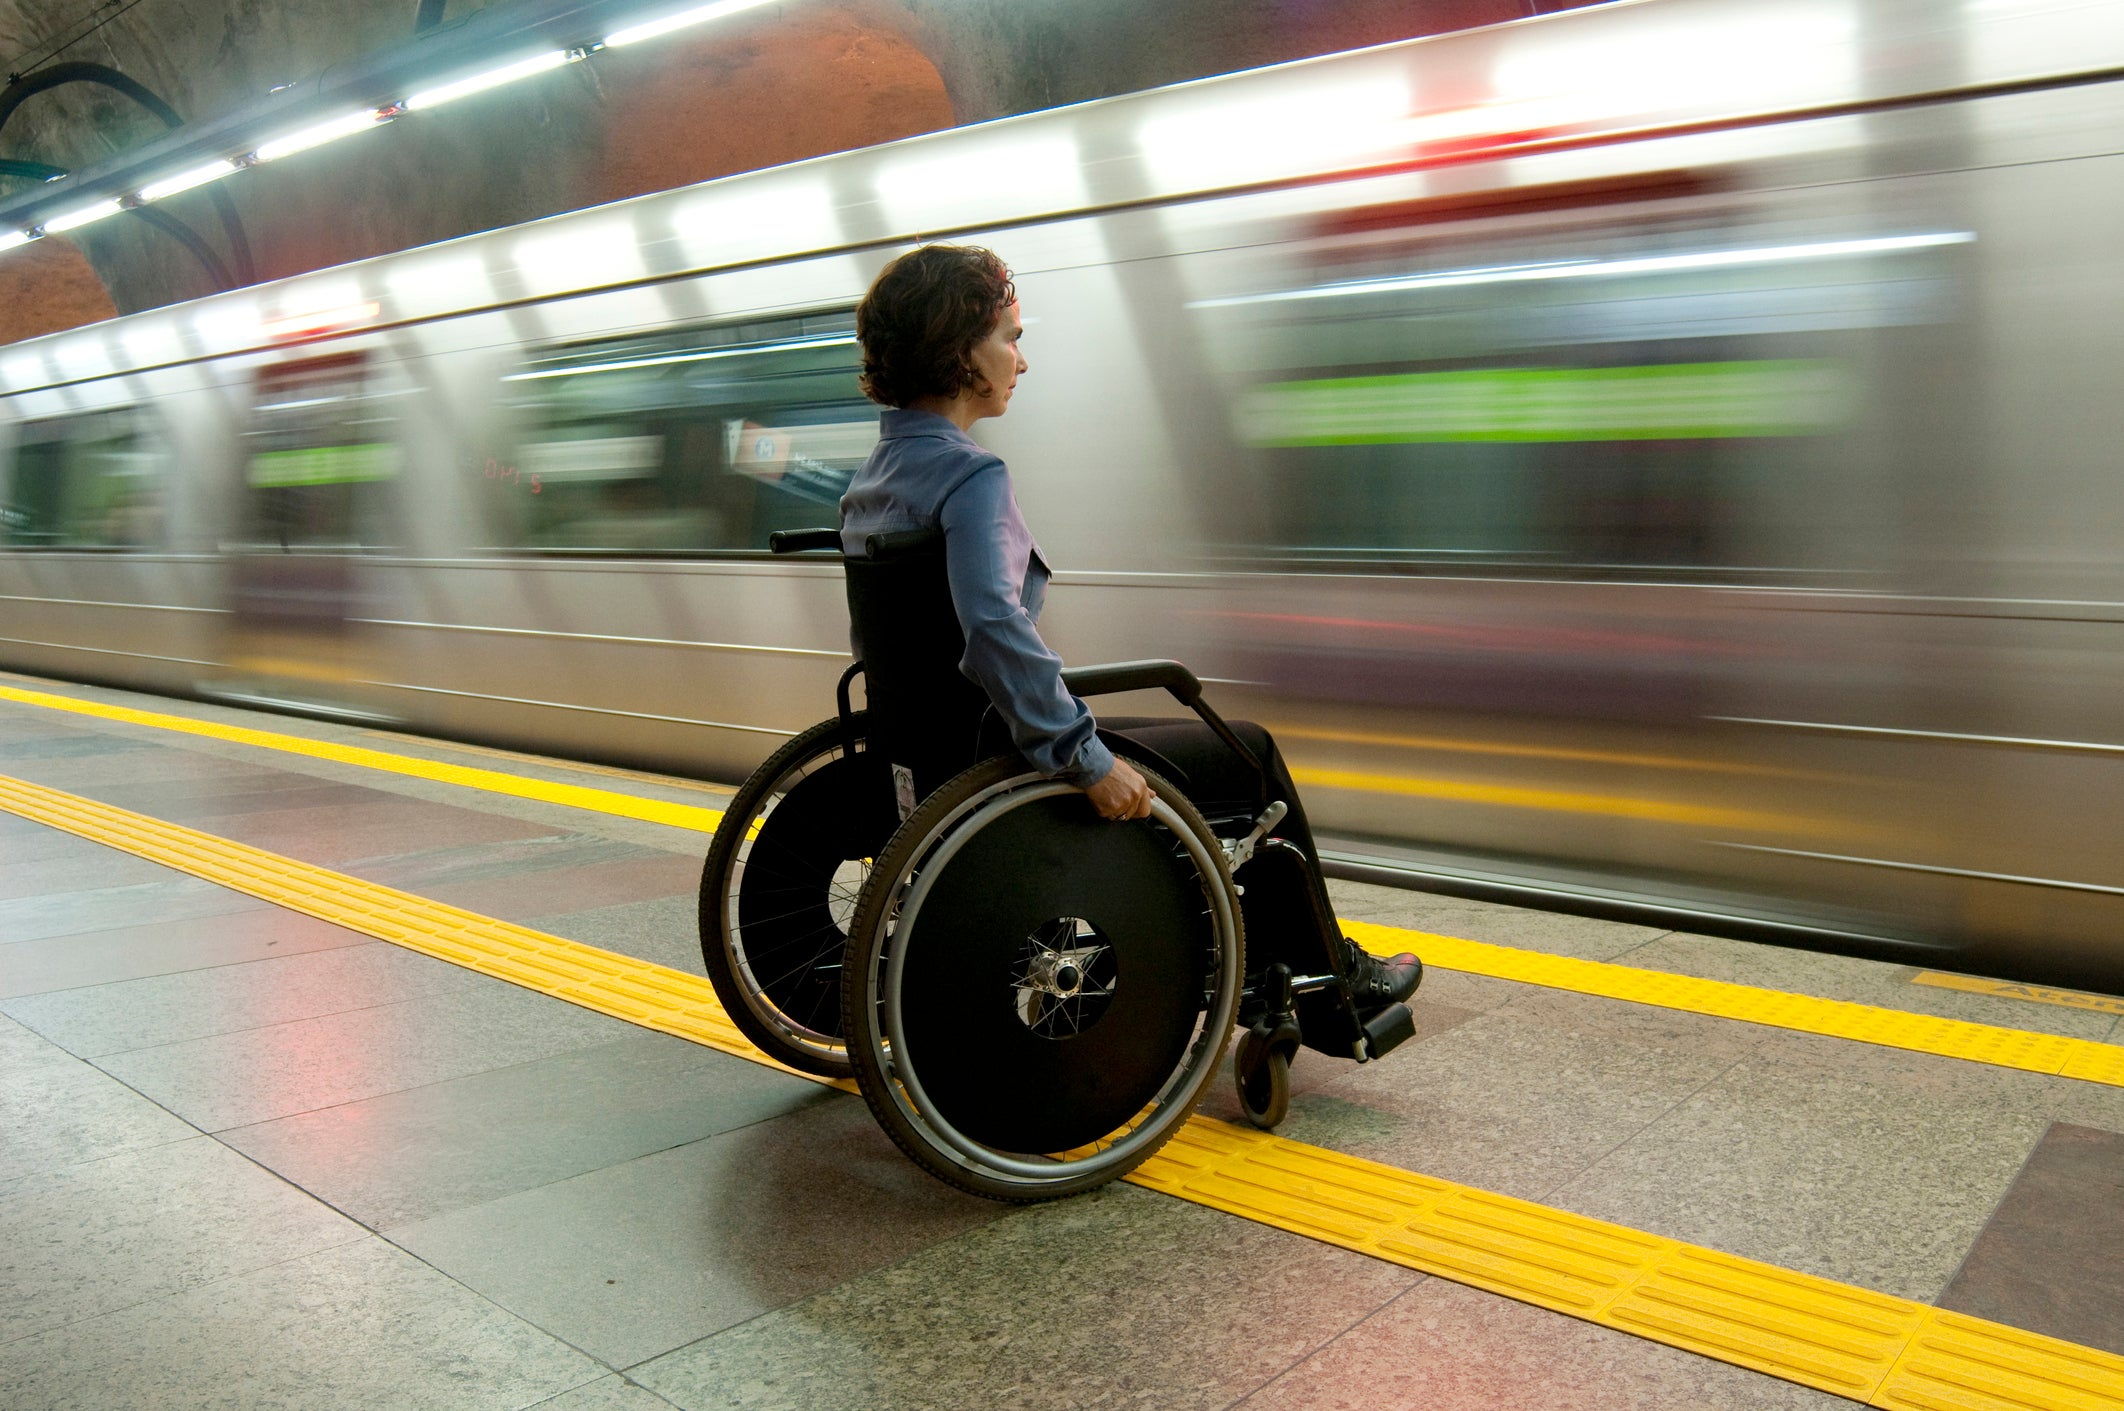 A disabled woman was just forced to miss her train because she uses a wheelchair